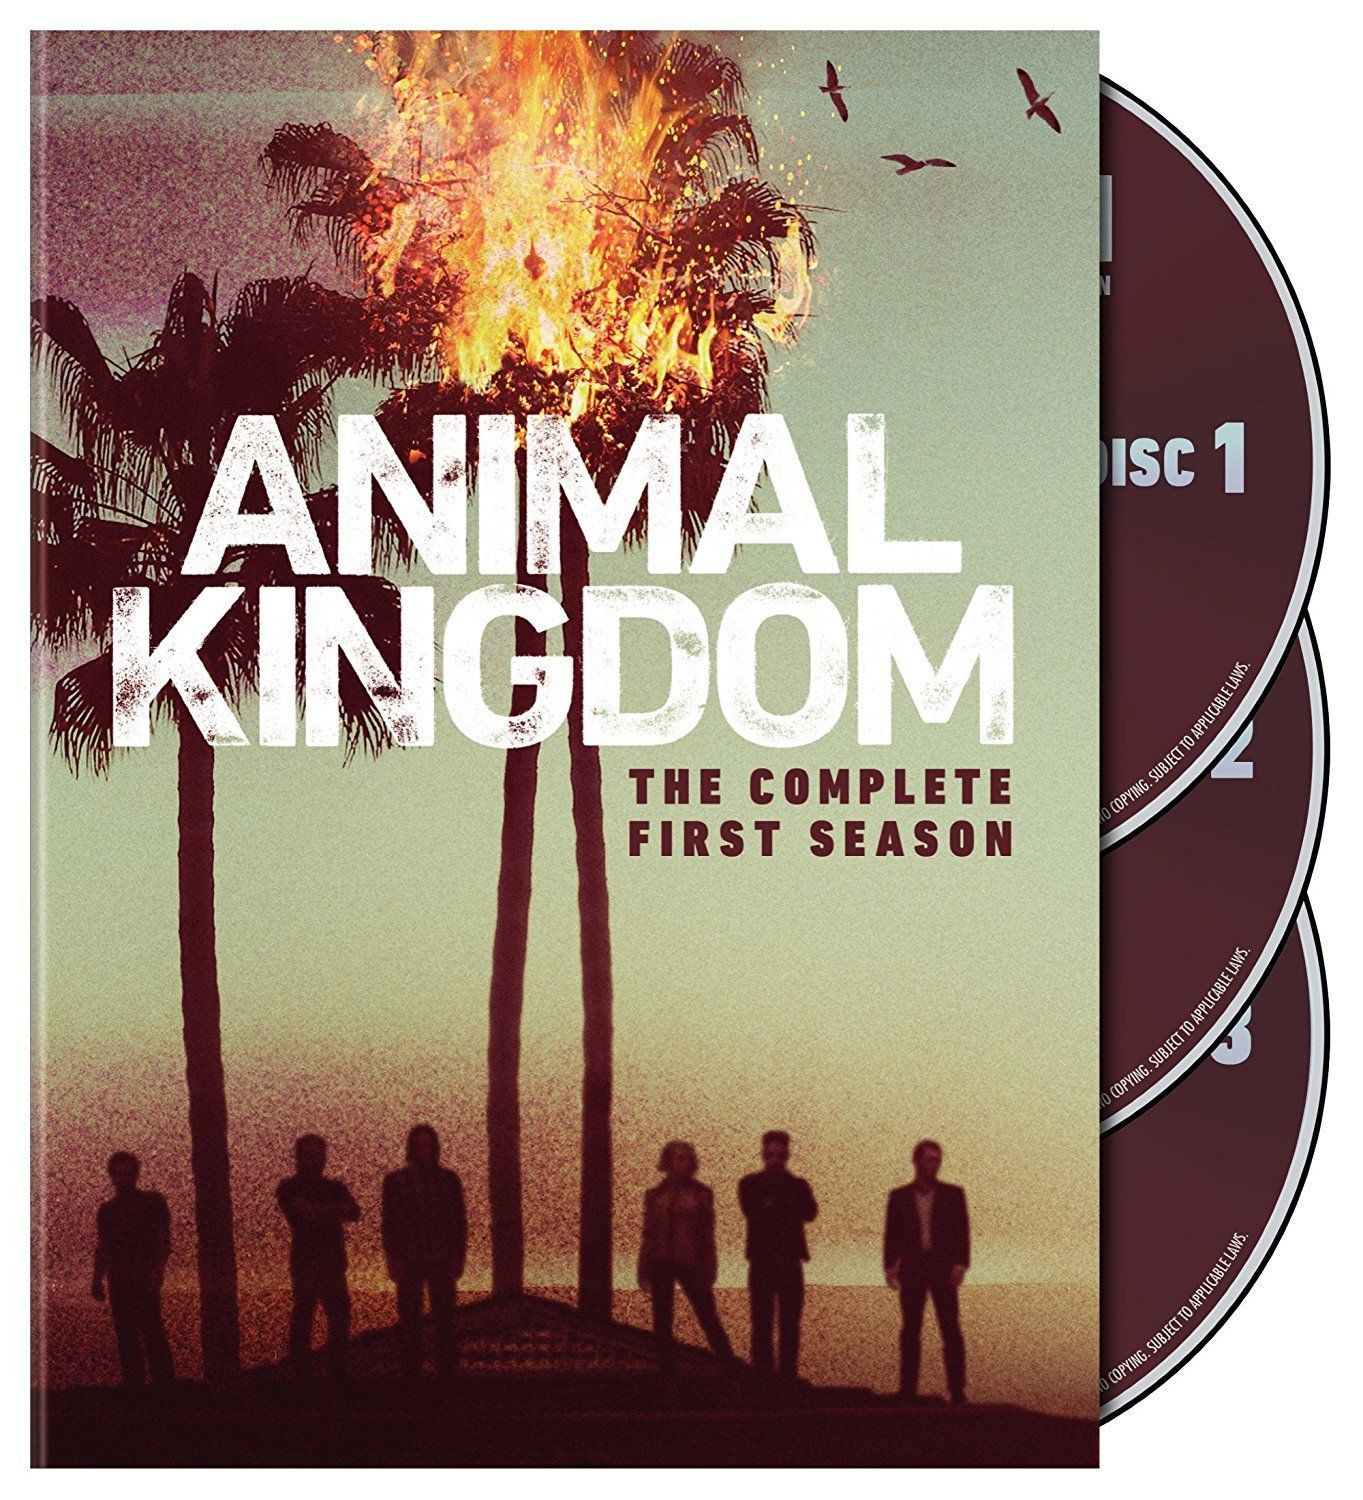 Animal kingdom the complete first season 1 dvd 2017 3 disc set 172645509038 for 23 50